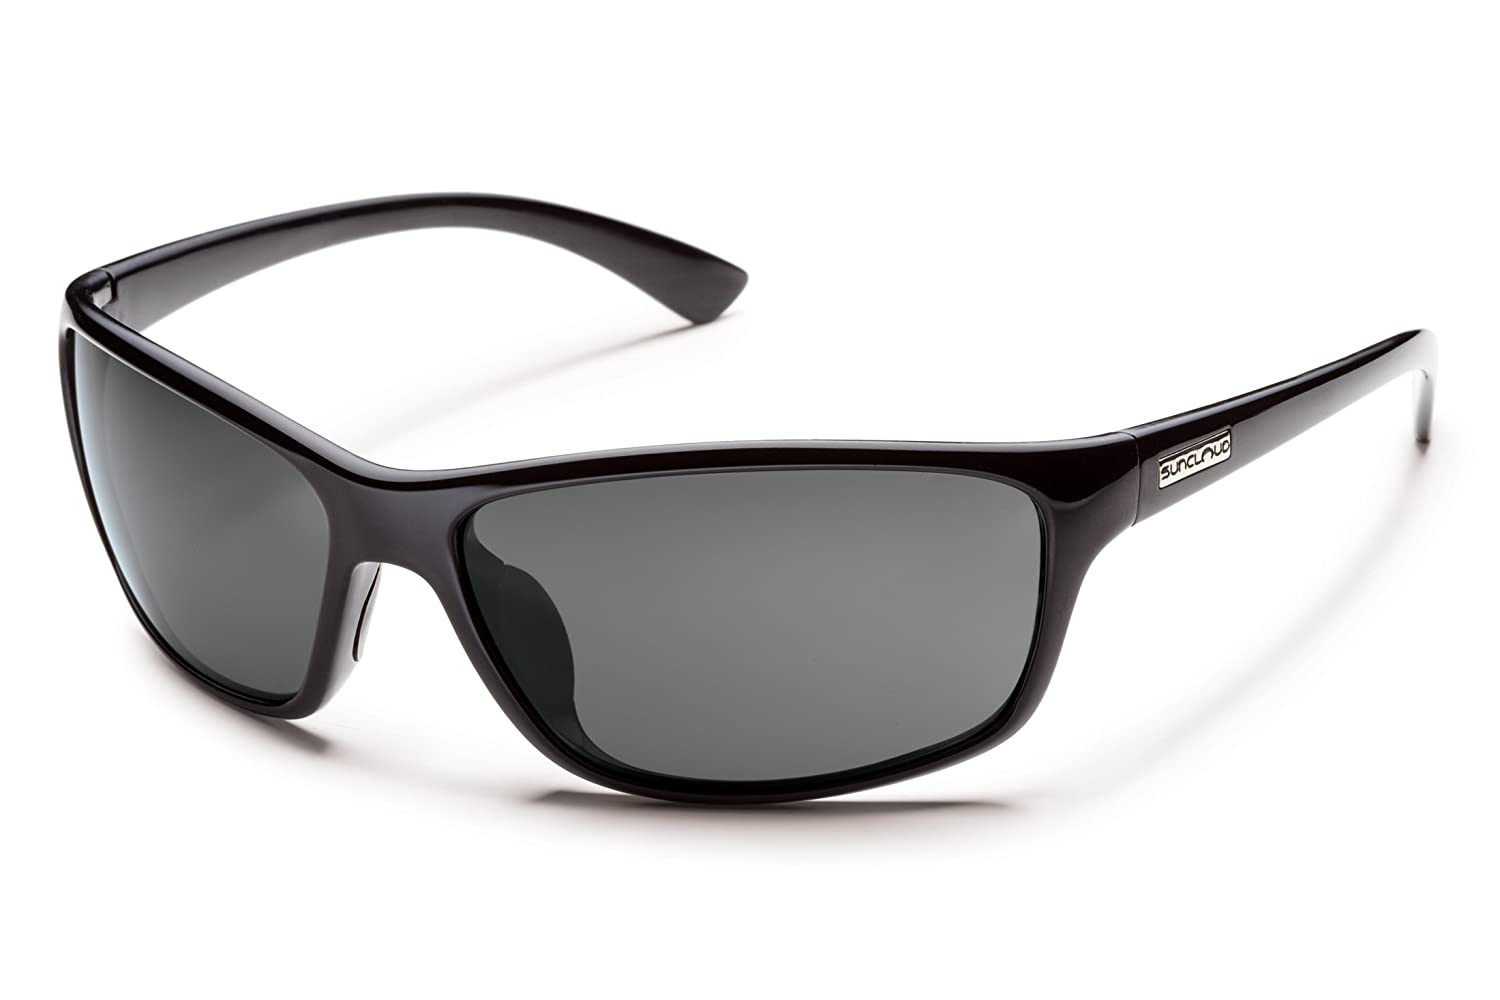 c9e196a3fc Amazon.com  Suncloud Sentry Polarized Sunglass (Black Frame Gray Polar  Lens)  Sports   Outdoors